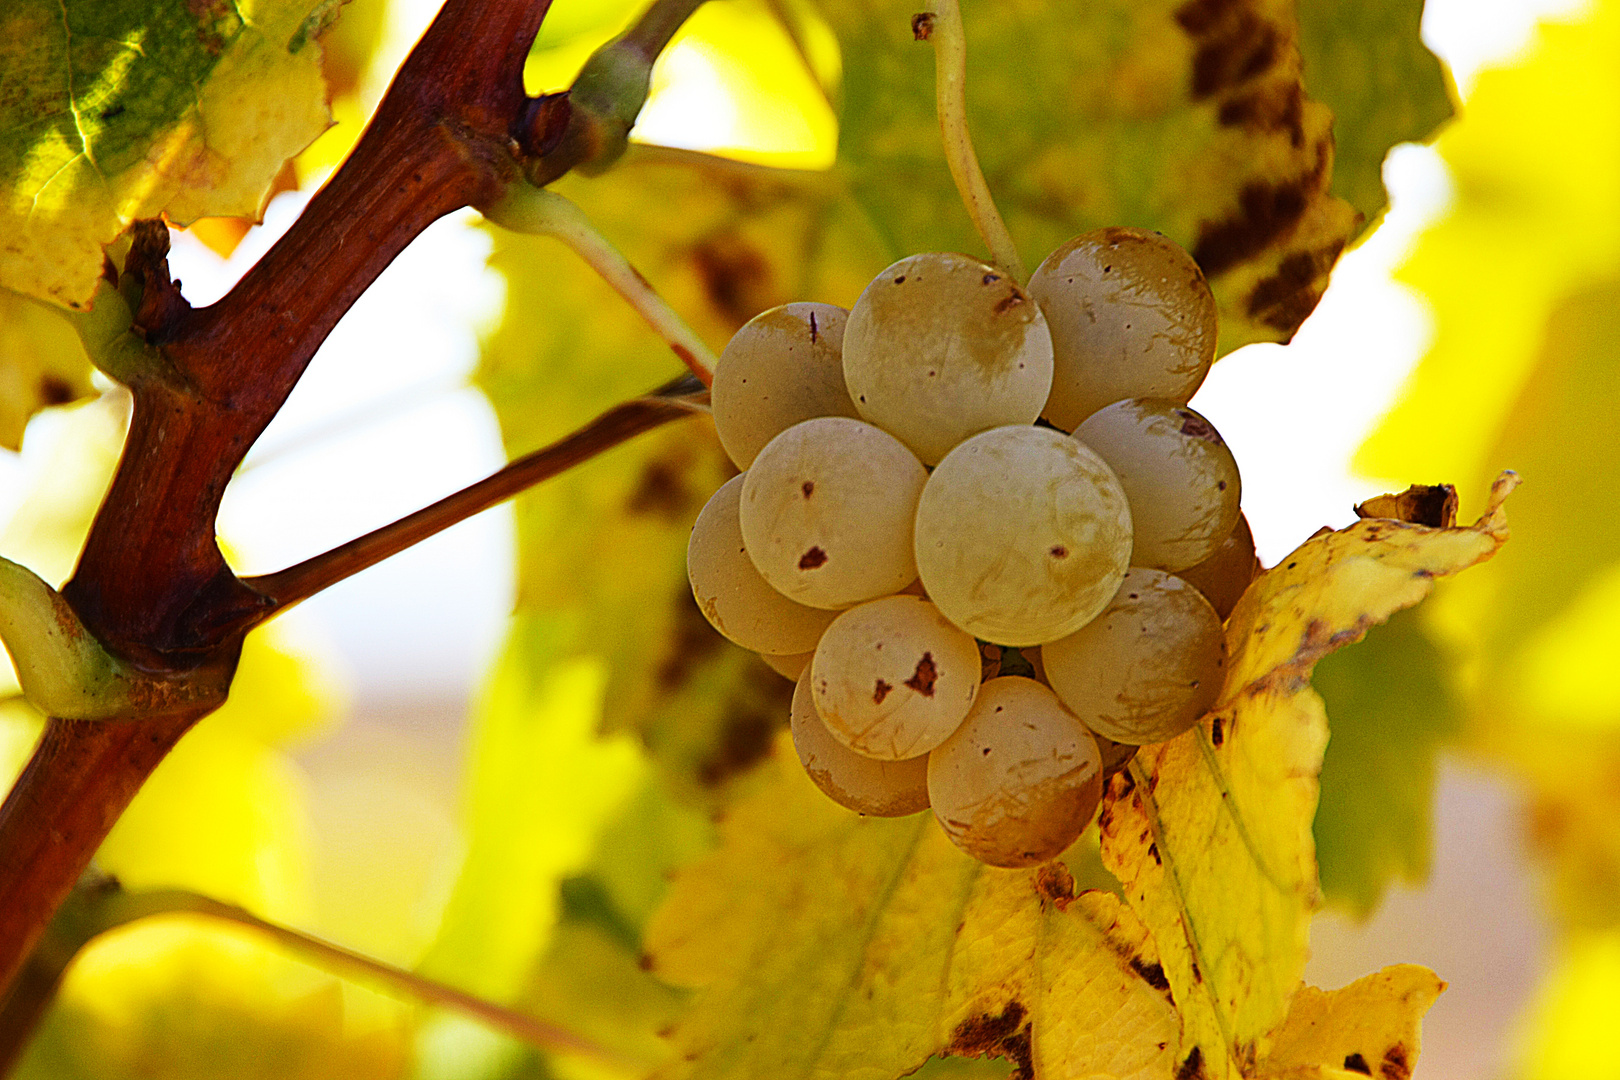 Racimo de uvas blancas - Bunch of white grapes